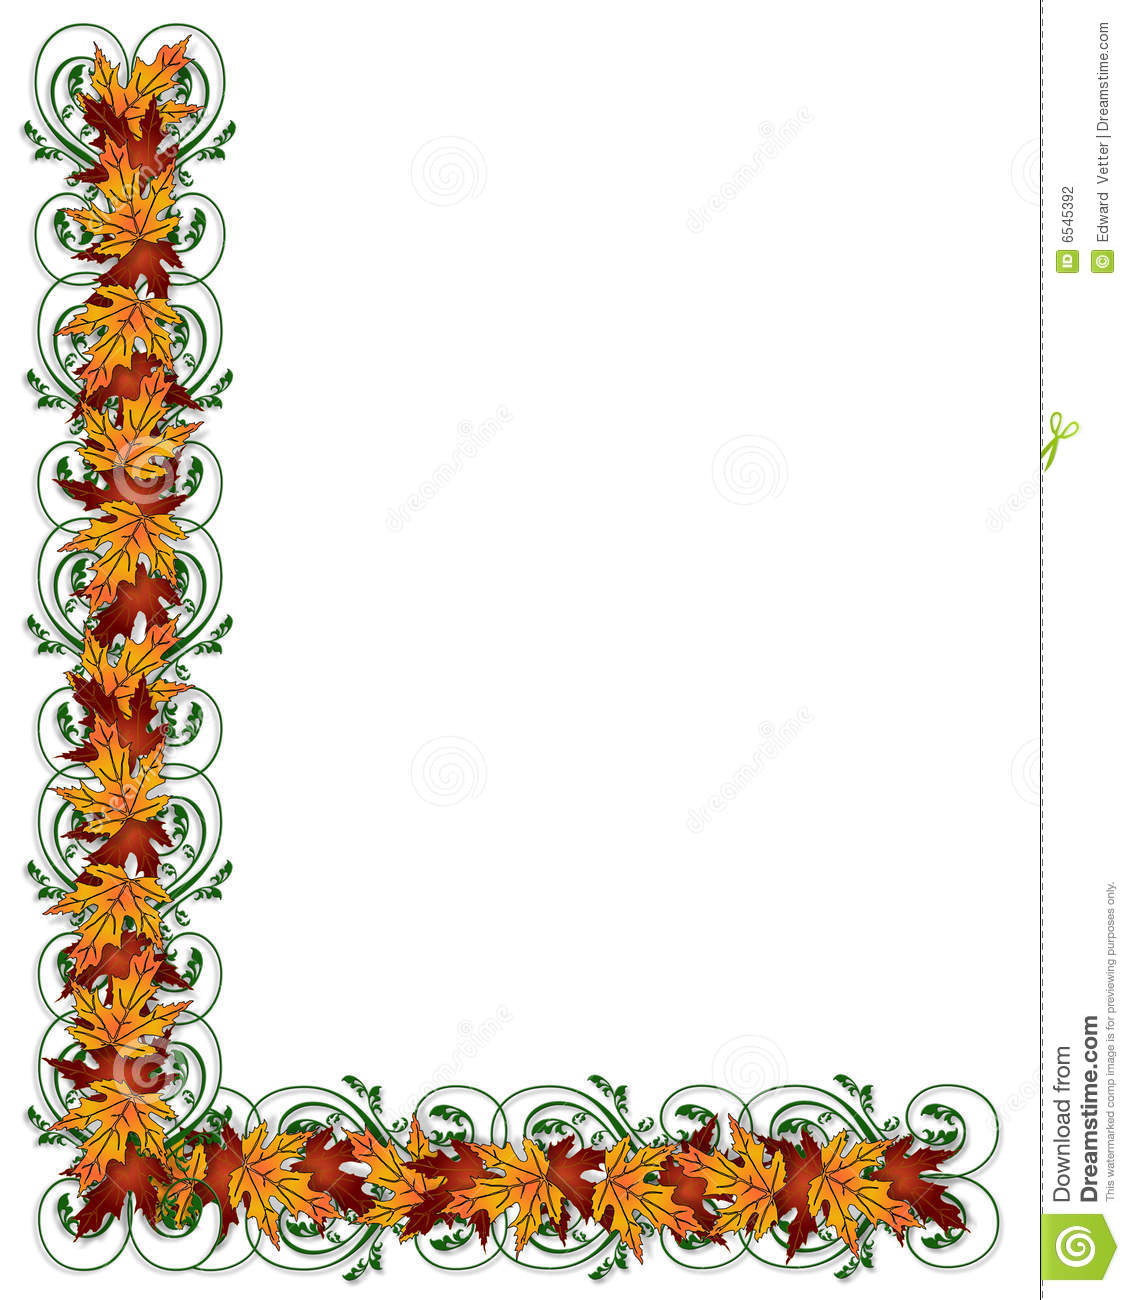 Free Clip Art Fall Borders Thanksgiving autumn fall